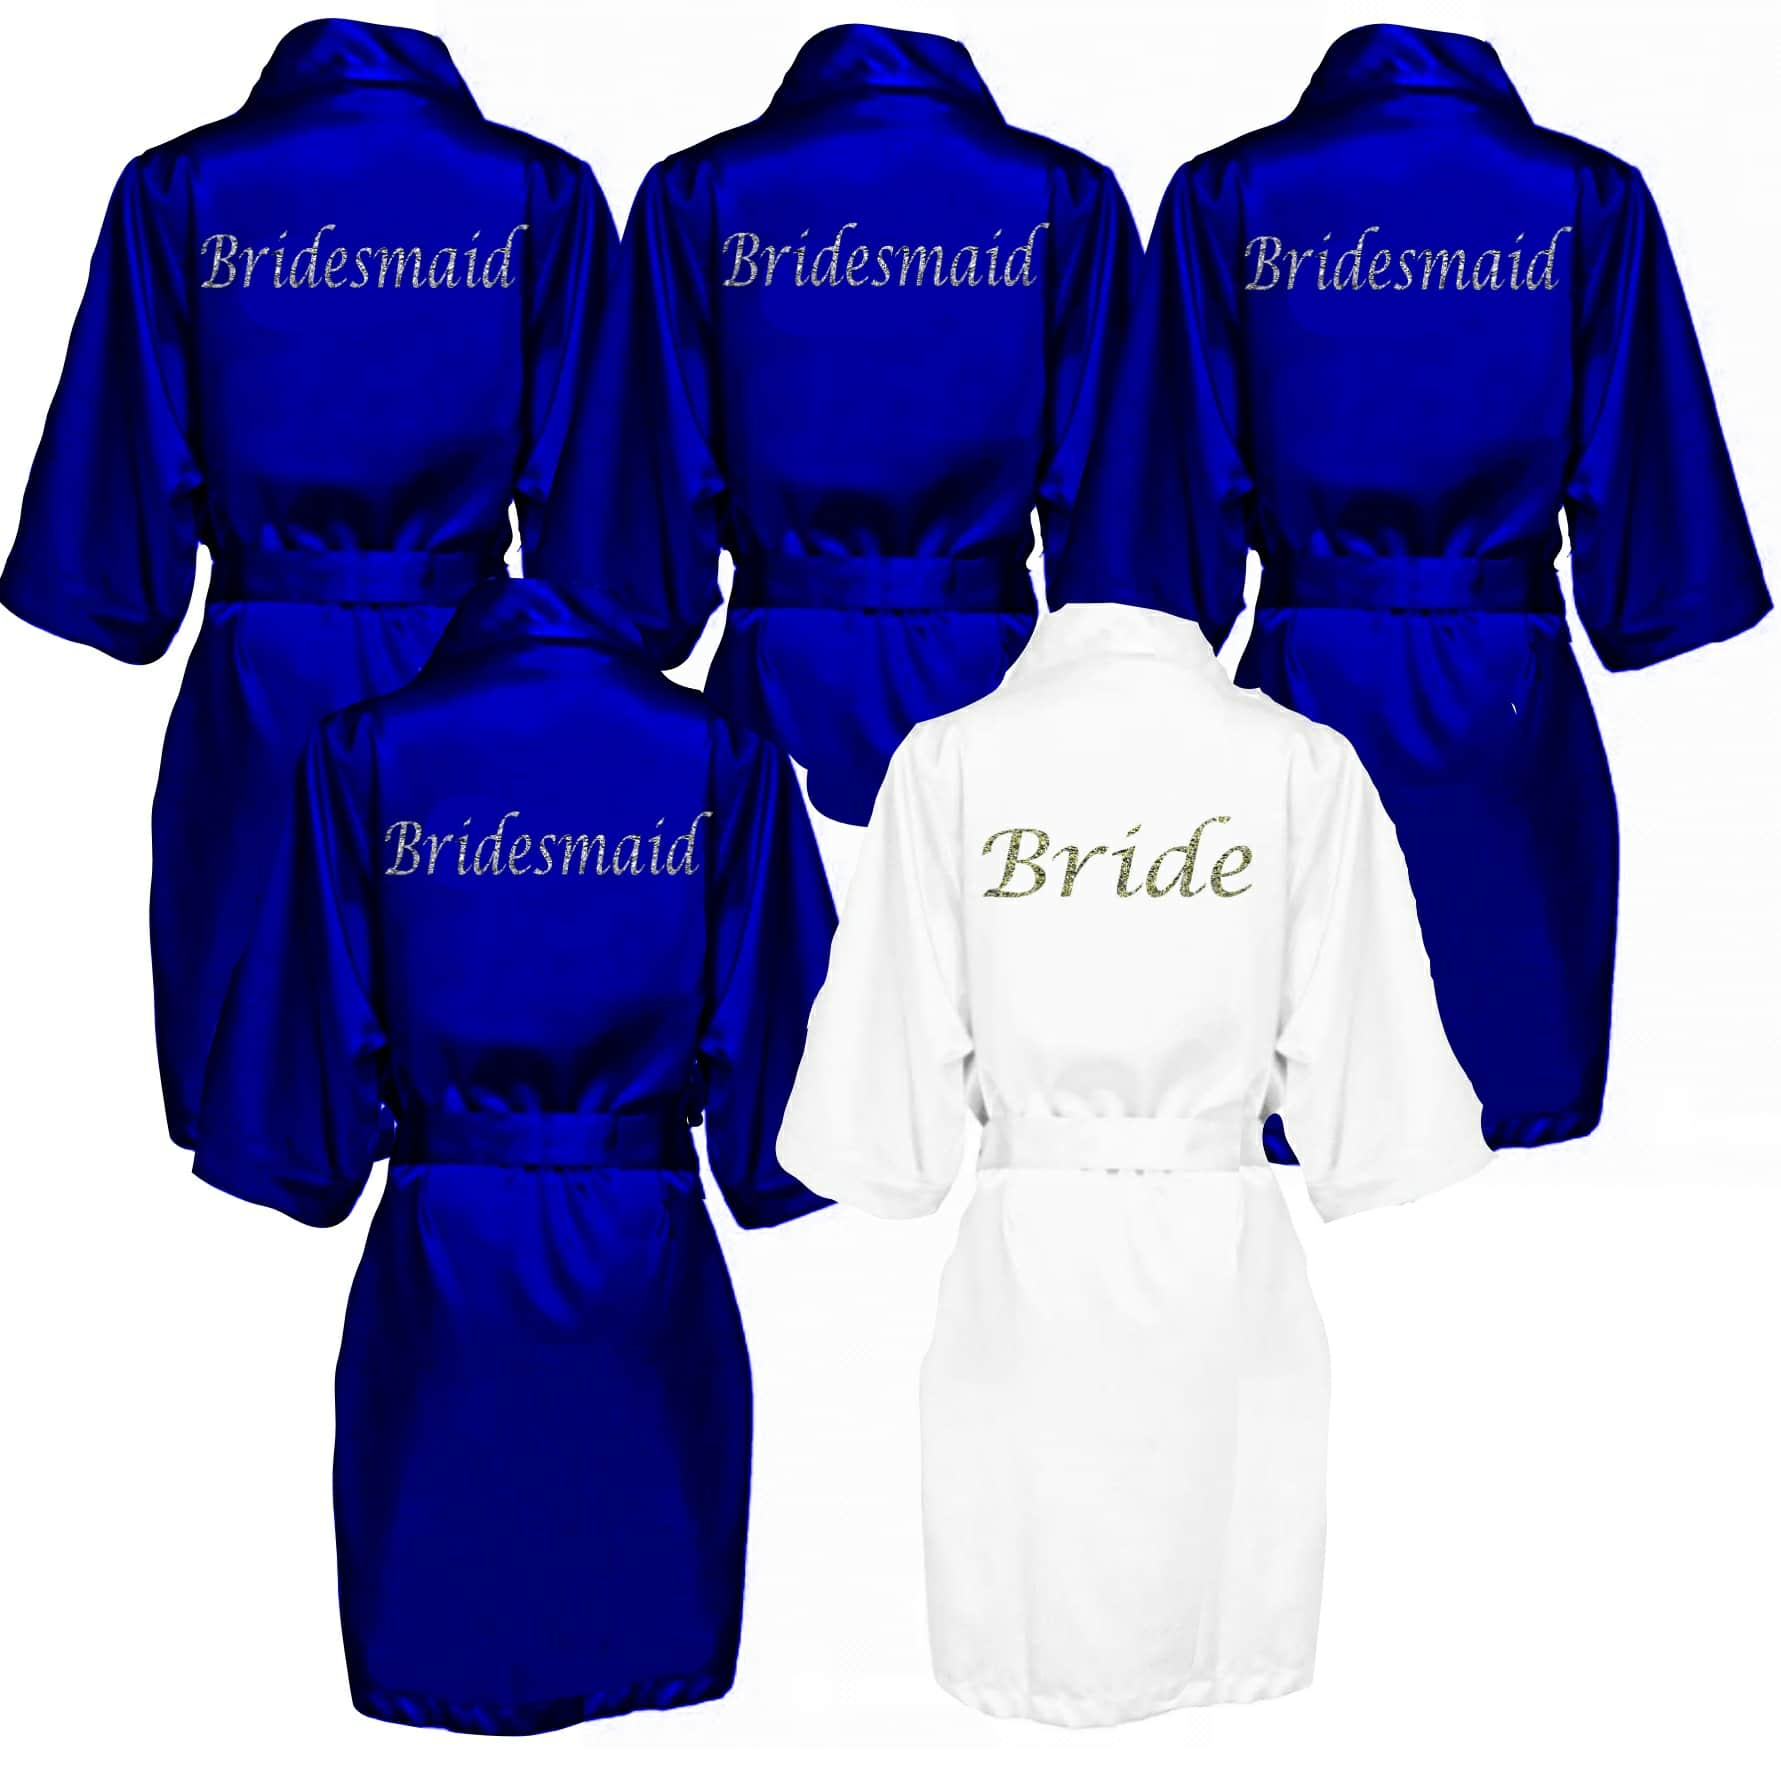 8ff37f9d9a4db Royal Blue Robe Personalised Satin Bridal robes -Wedding Threads